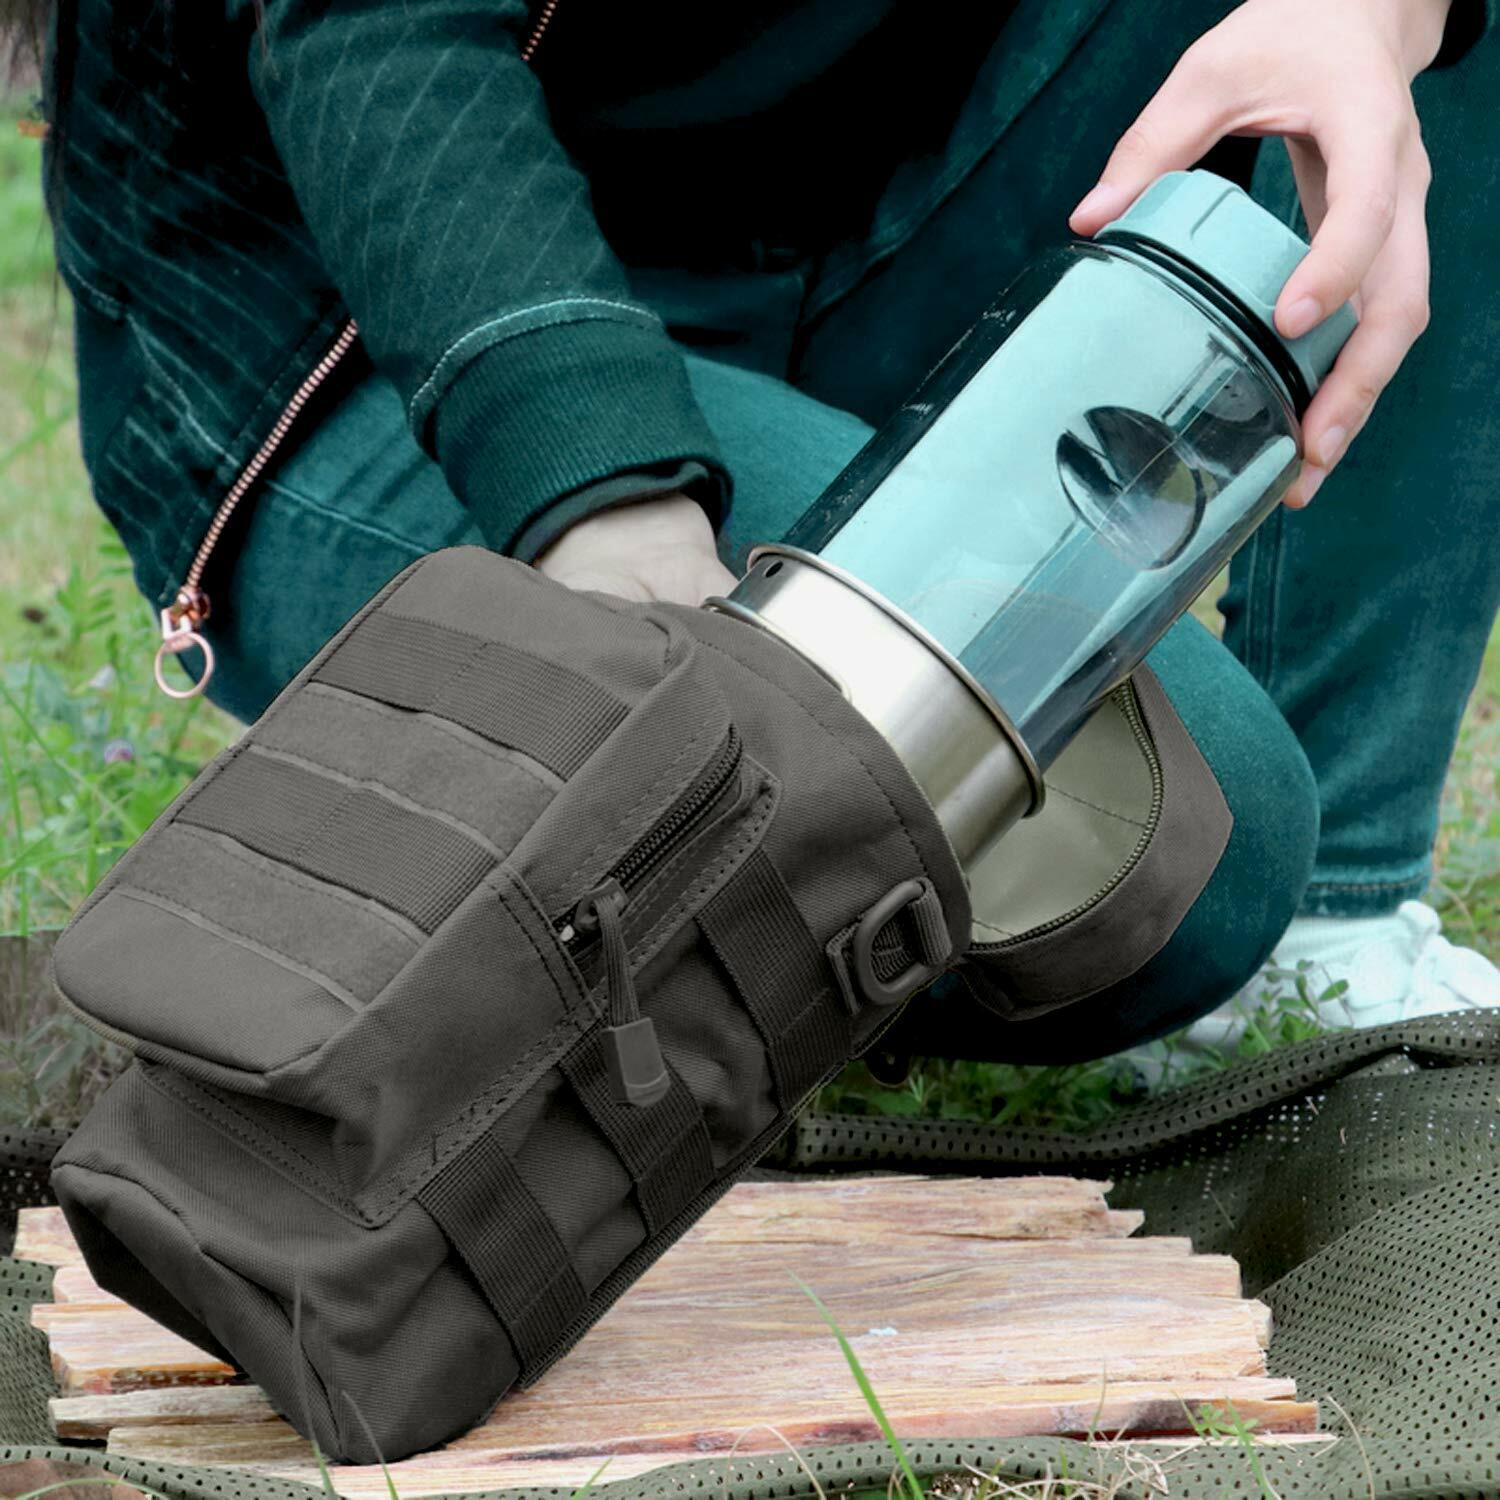 Military Water Bottle Pouch Holder Tactical Hiking Kettle Gear Molle Pack Bag US Hunting